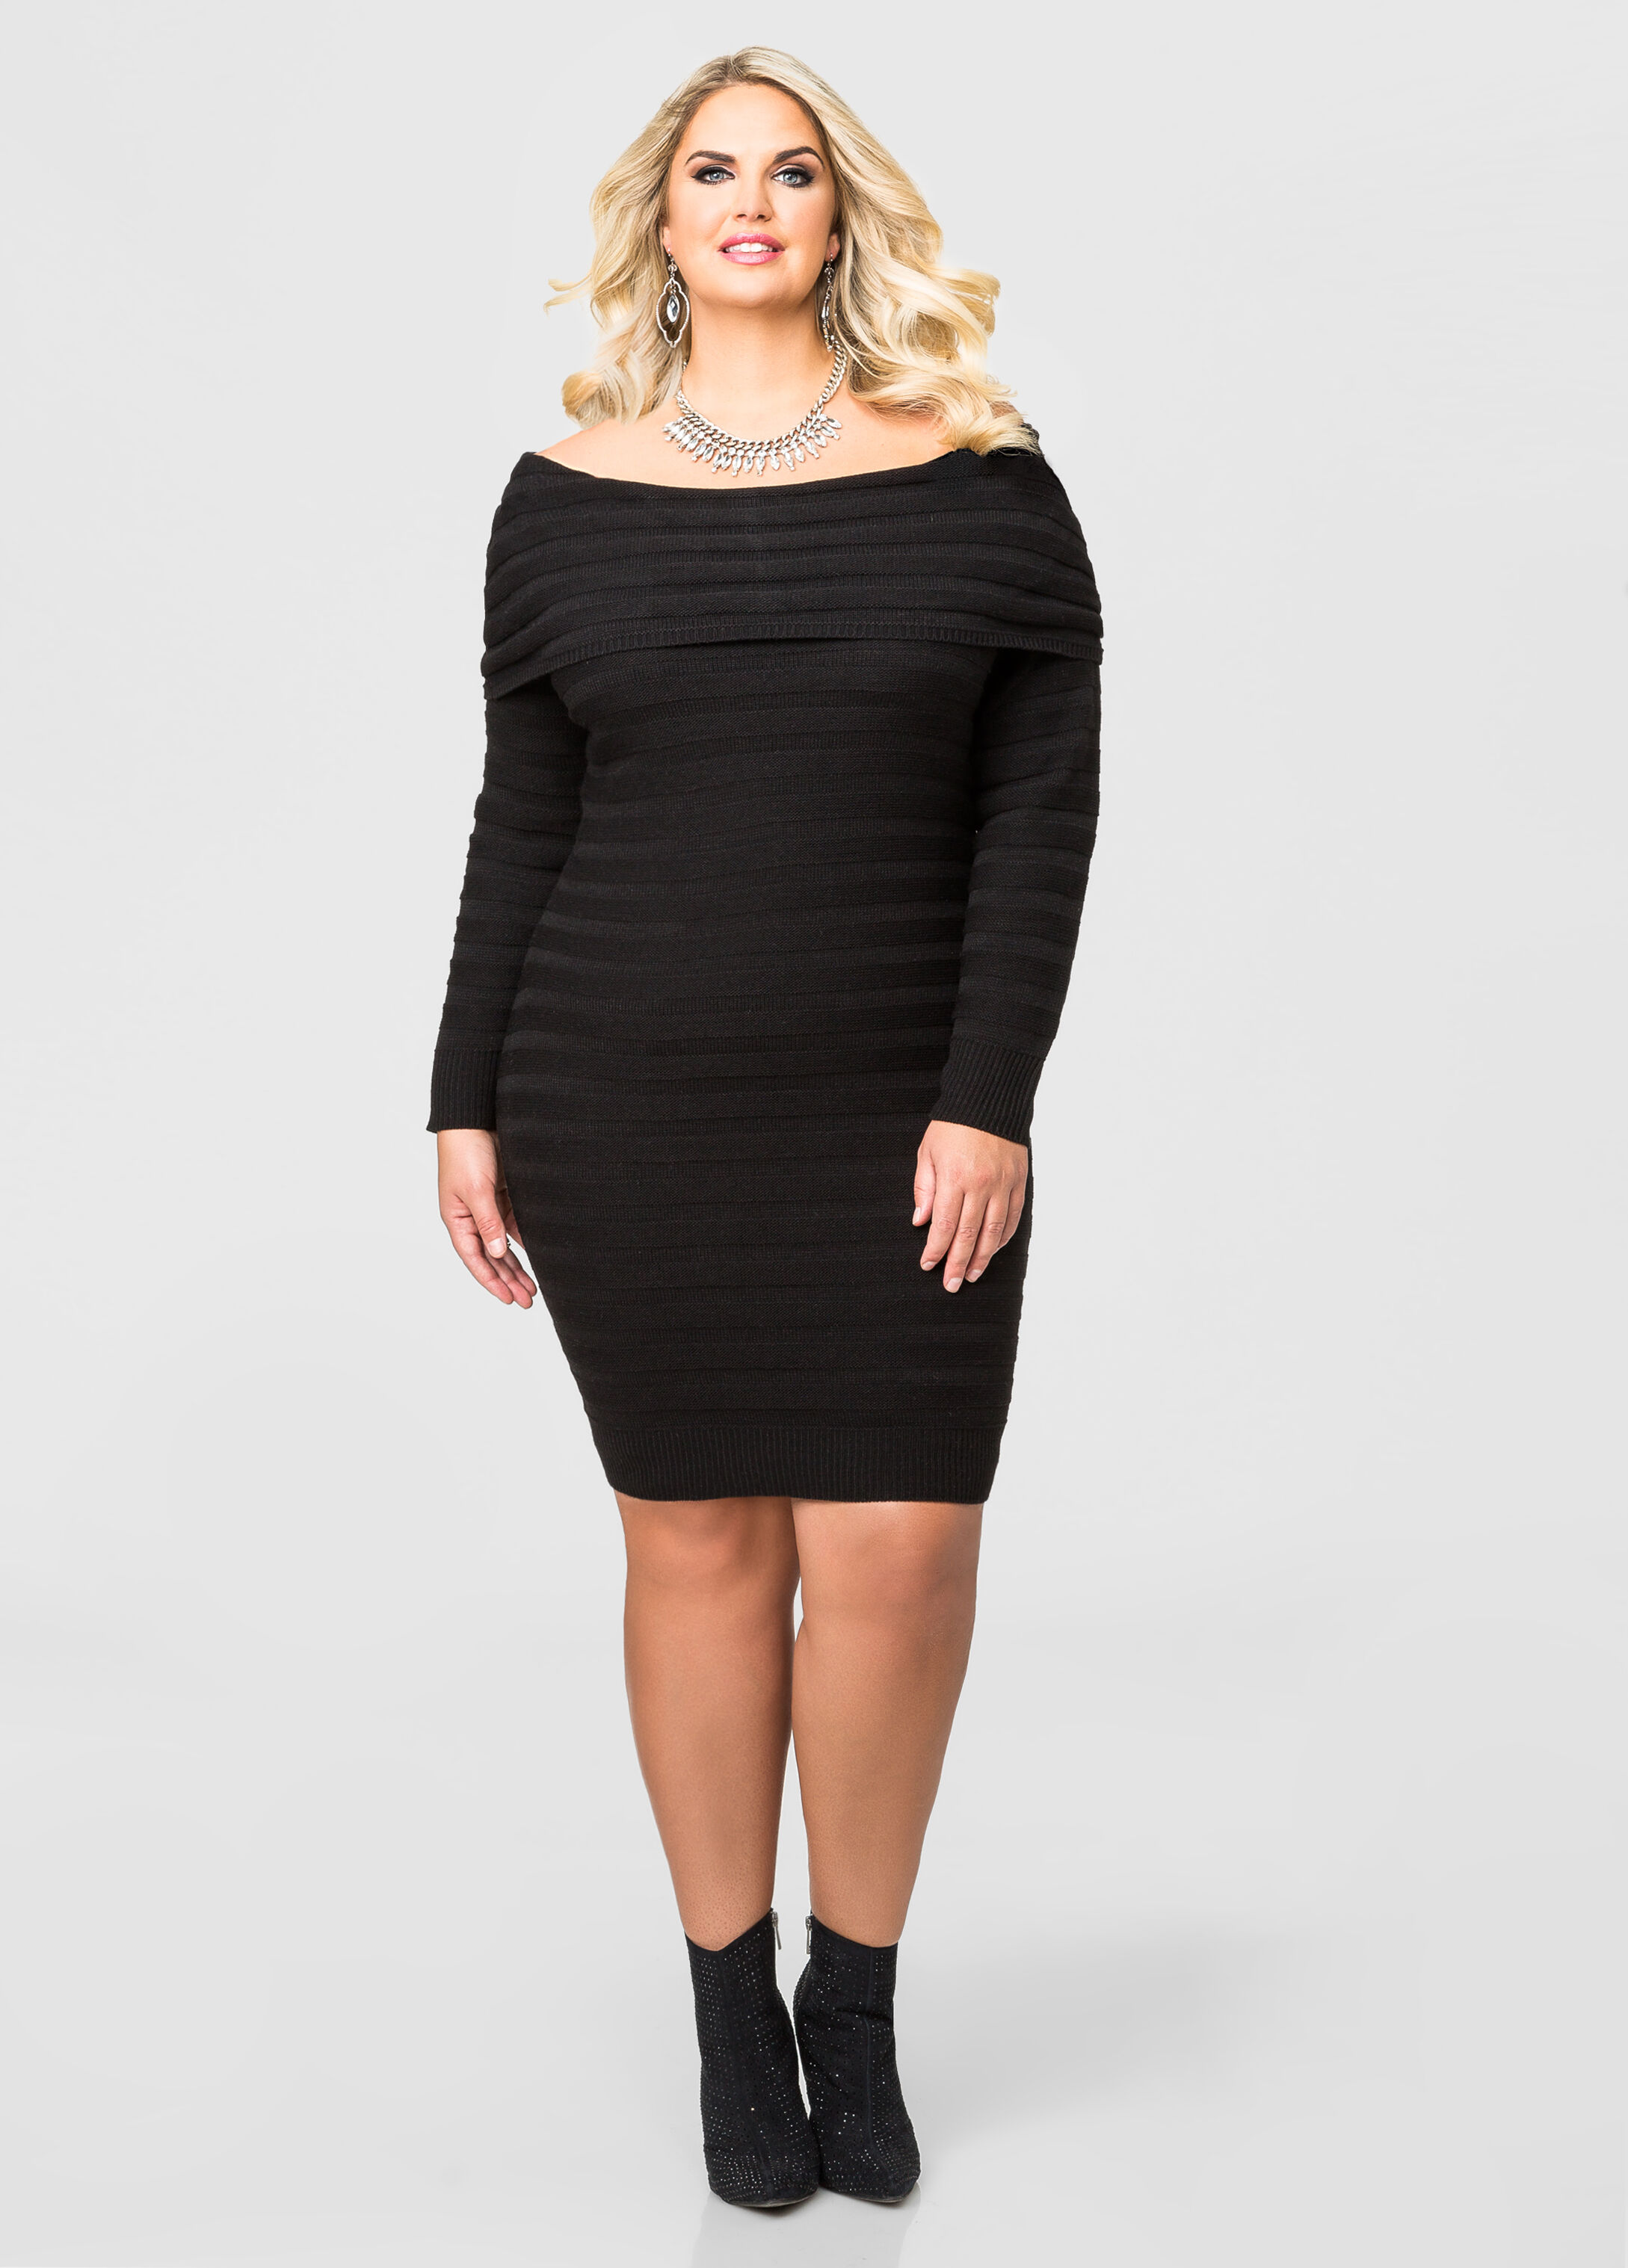 Shop Rainbow for plus size sweaters. Find the latest styles at prices that won't bust your budget. We offer free shipping on orders over $50 & free returns in store.